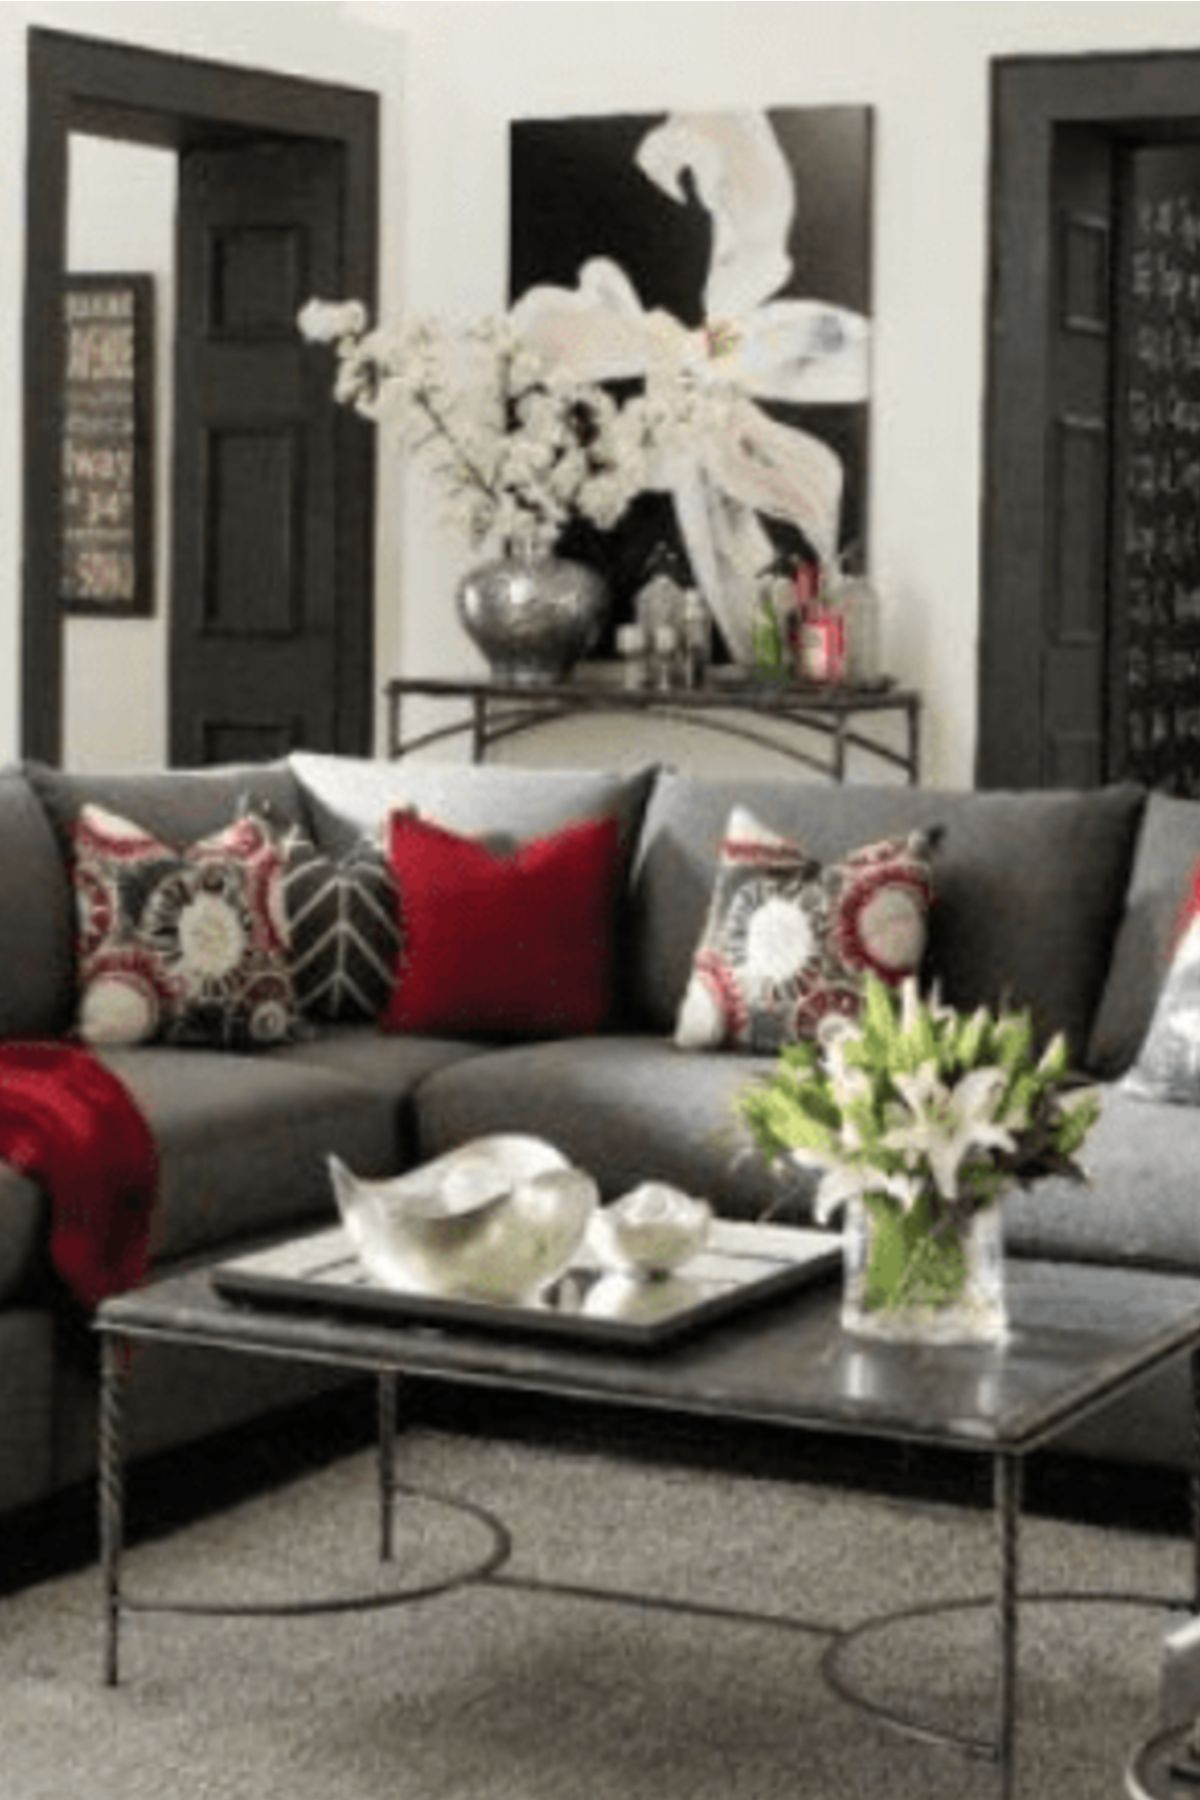 Home Decor Gray Living Room Ideas Grey Living Room With Red Accents Homedecor Livingroomde Living Room Decor Gray Red Living Room Decor Living Room Grey